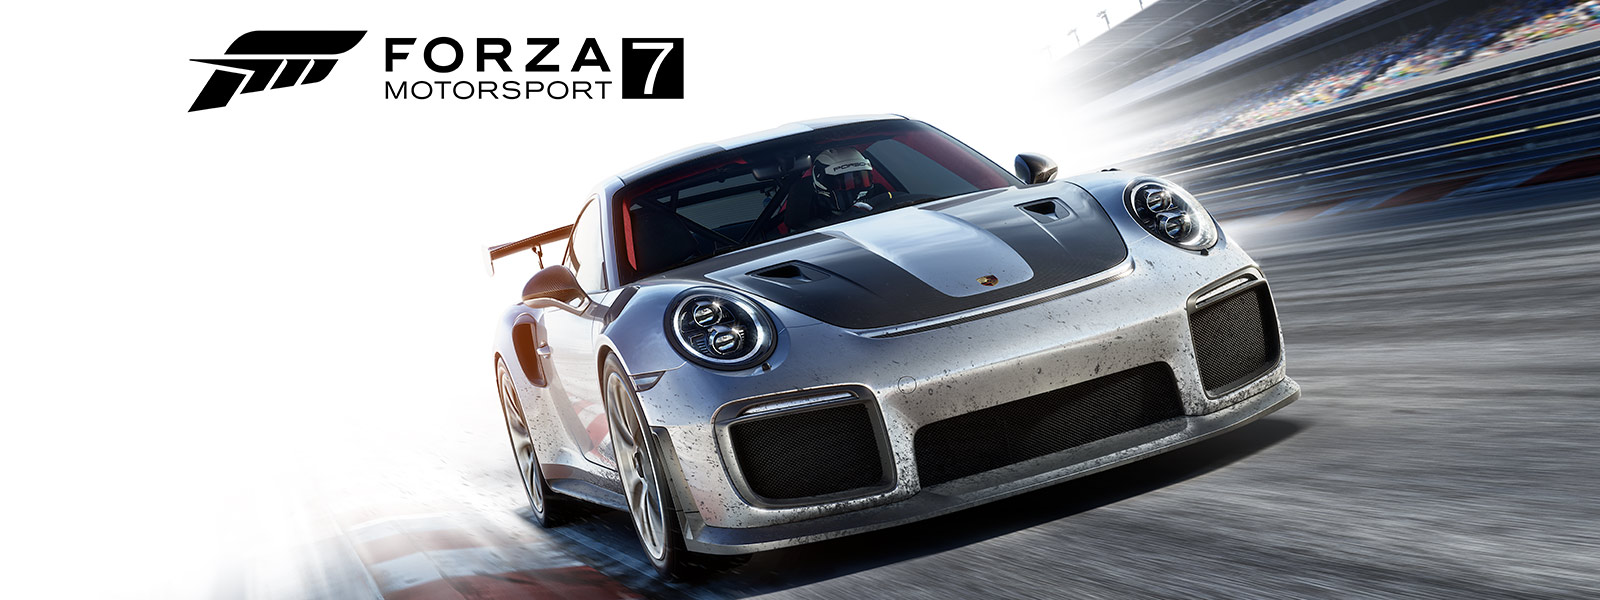 Destaque do Forza 7